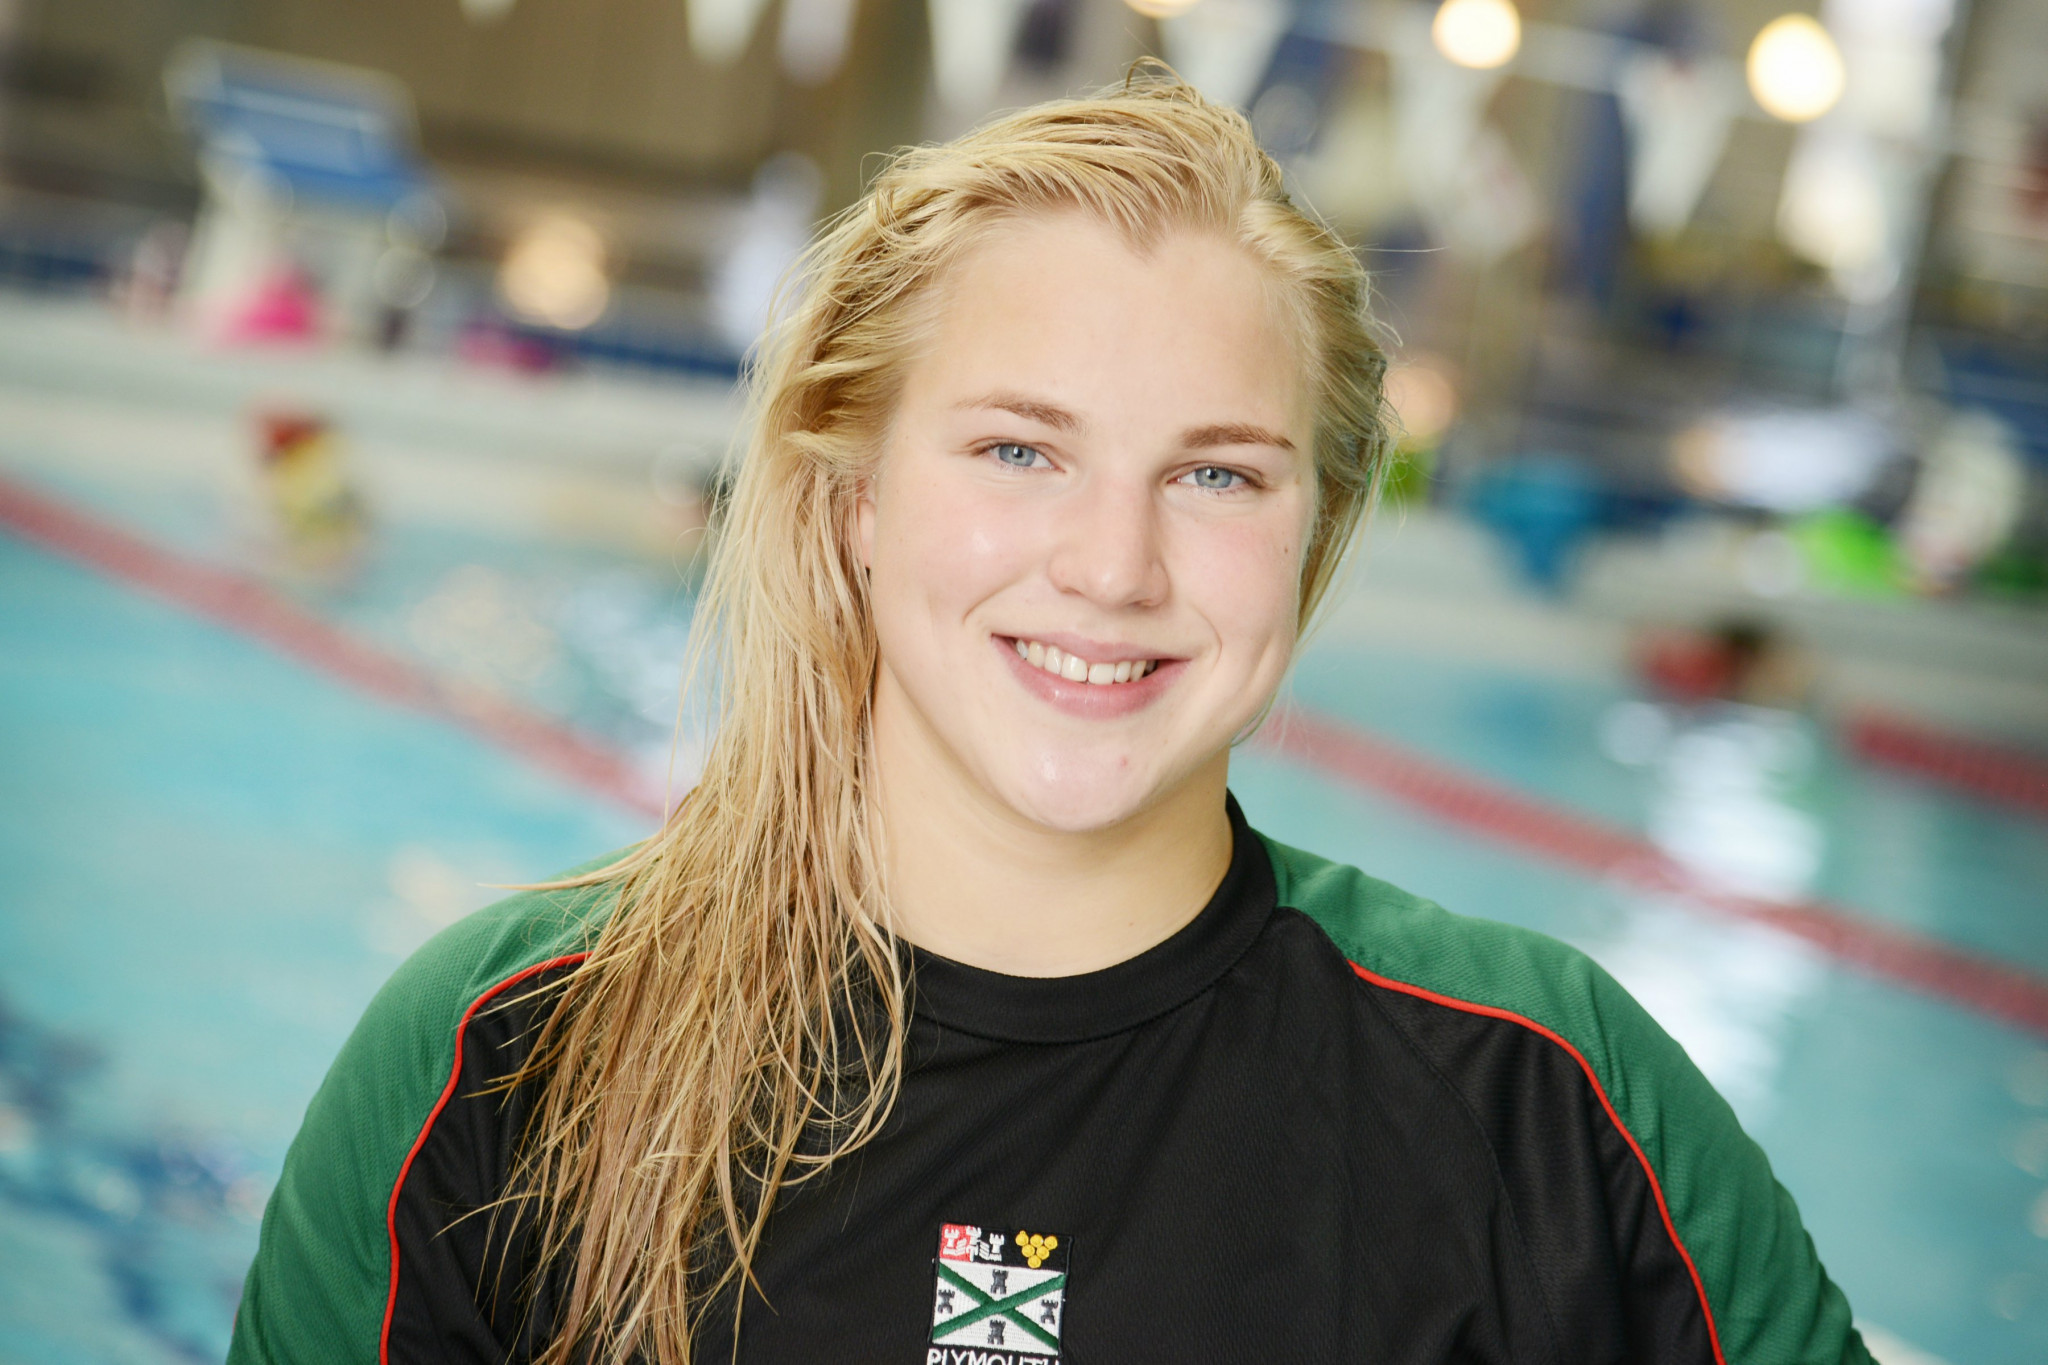 Rūta Meilutytė was a student at Plymouth College in the United Kingdom when she won her Olympic gold medal in the 100m breaststroke at London 2012 ©Plymouth College